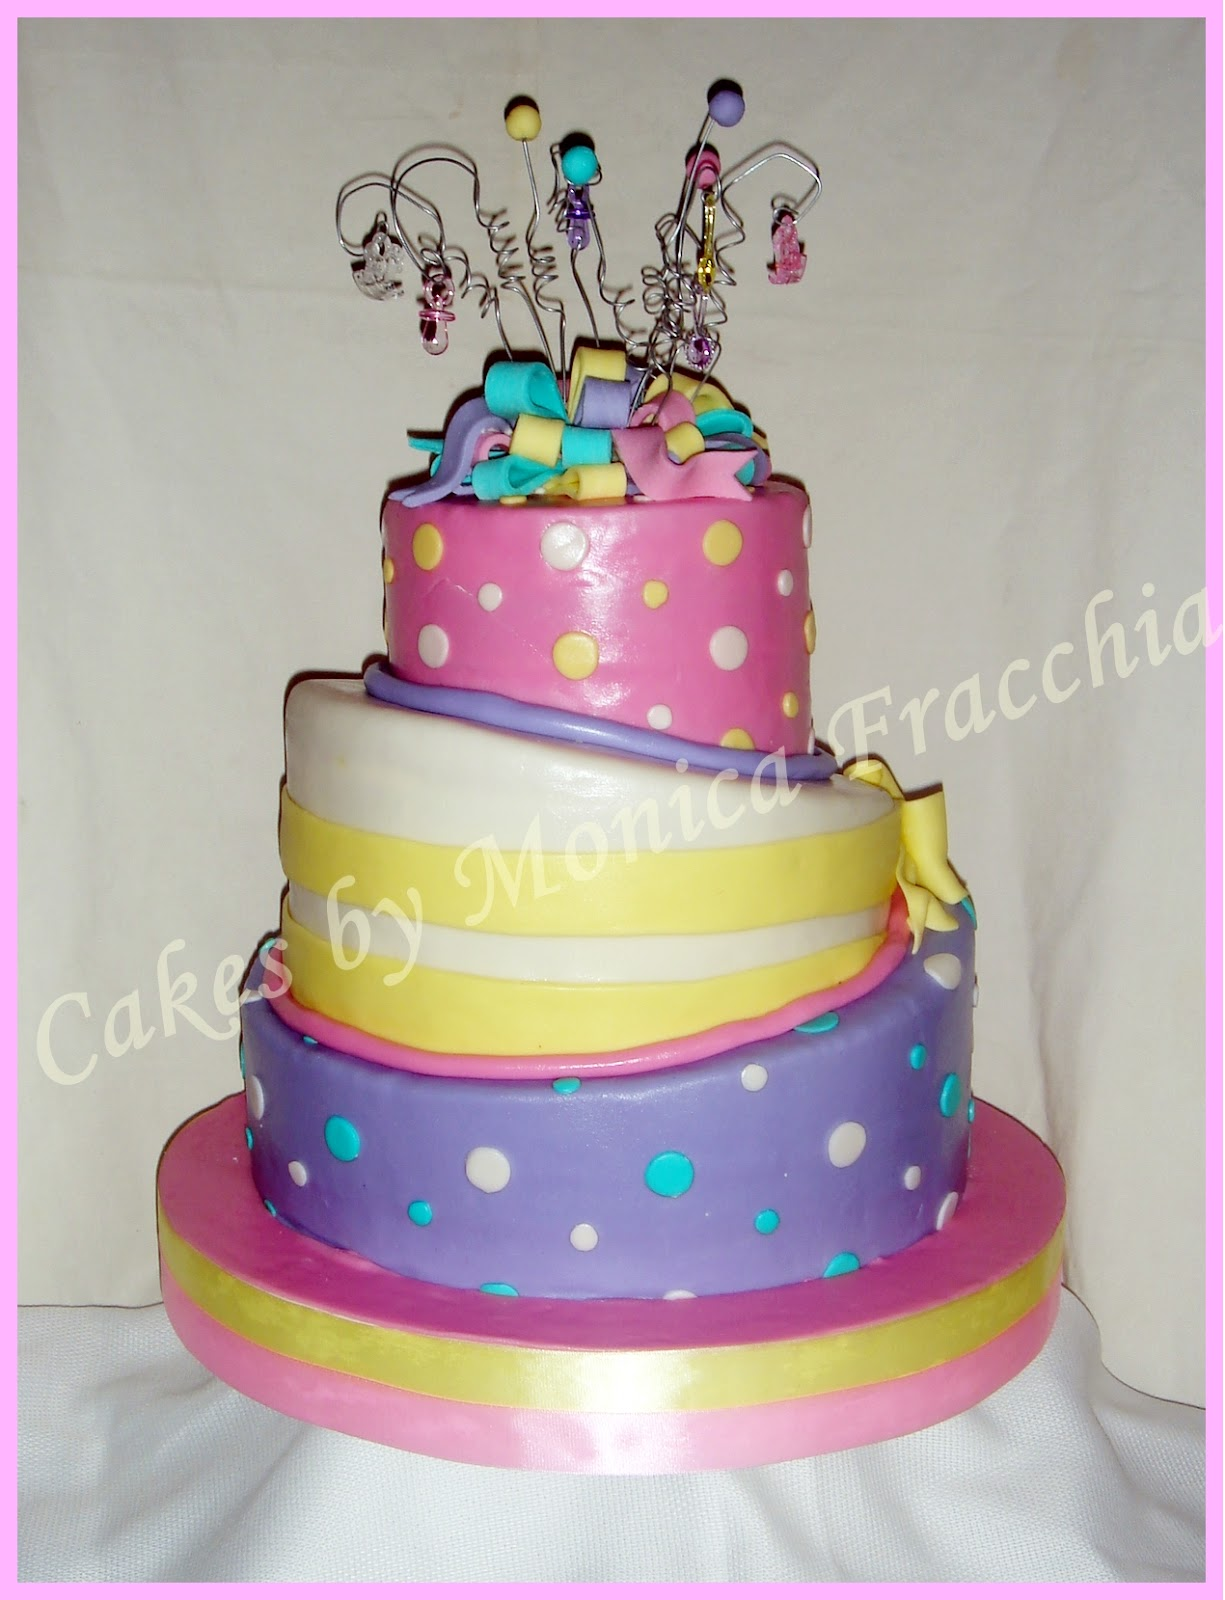 TORTA DECORADA PARA BABY SHOWER DE NIÑA | TORTAS CAKES BY MONICA ...